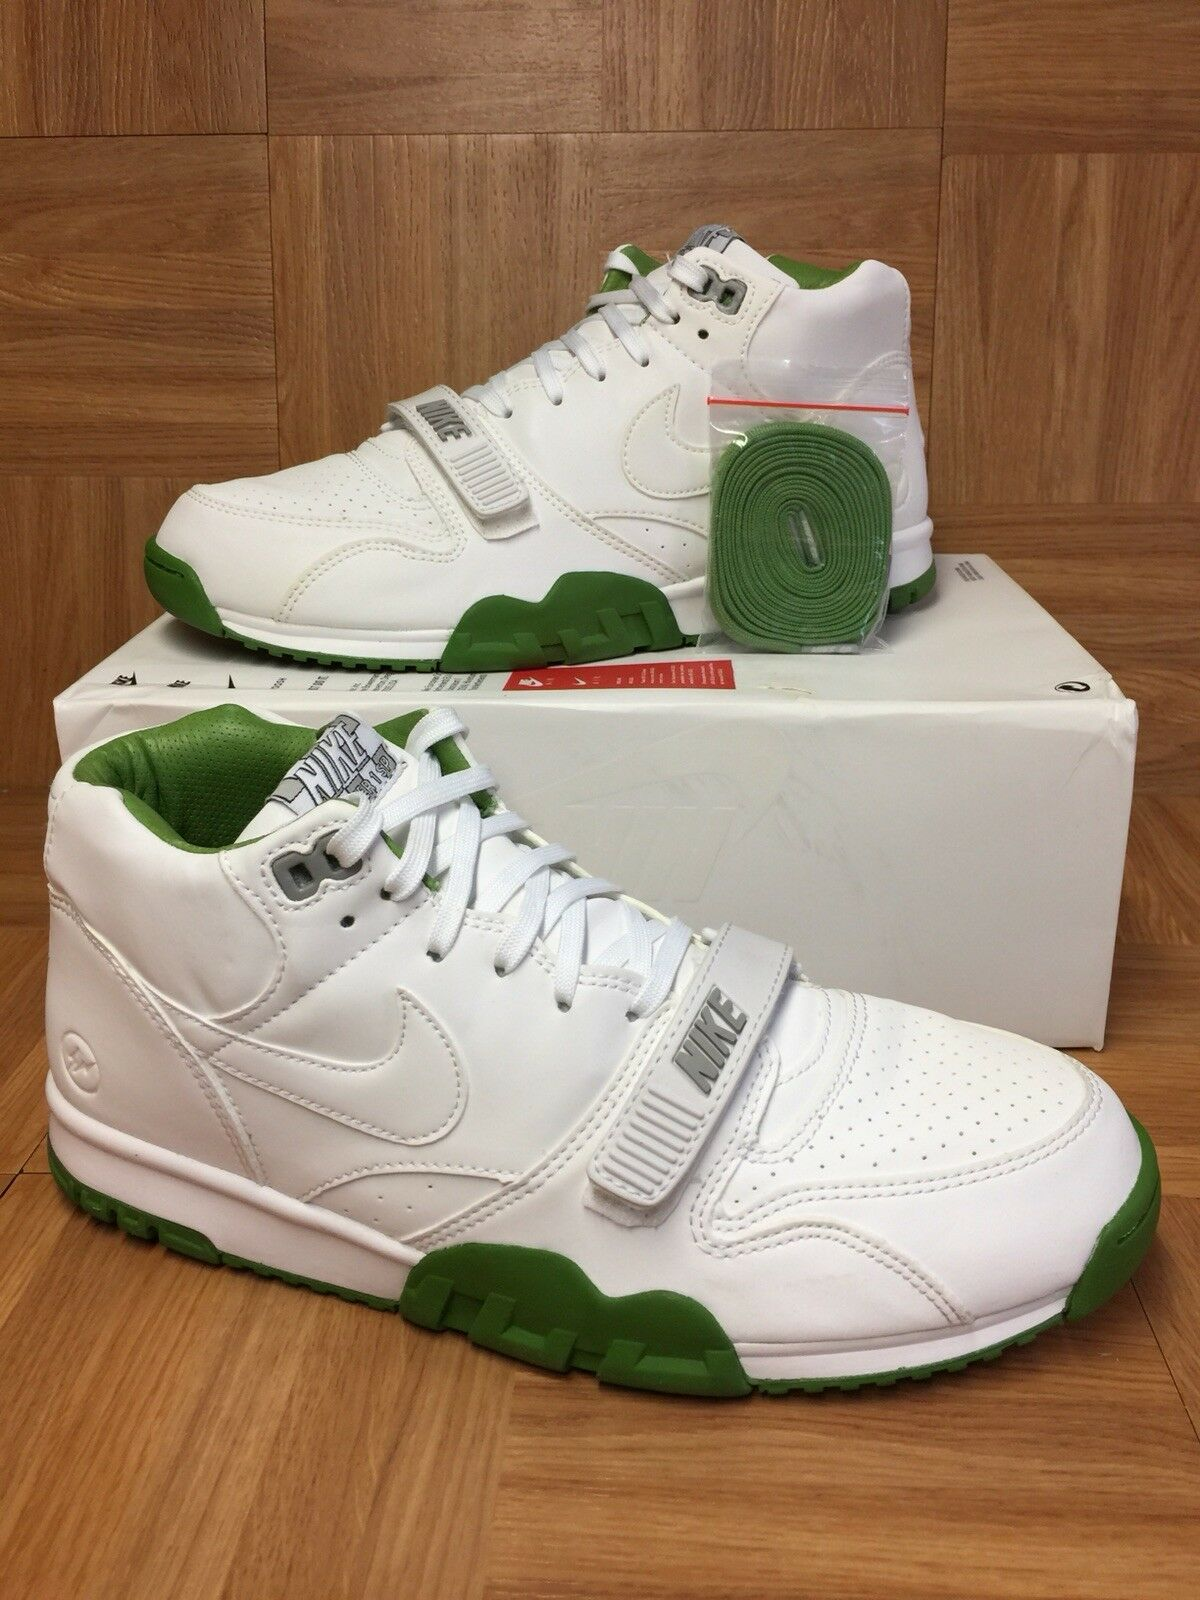 RARE Nike Air Trainer 1 Mid SP Fragment White Chlgoldphyll Sz 10.5 806942-113